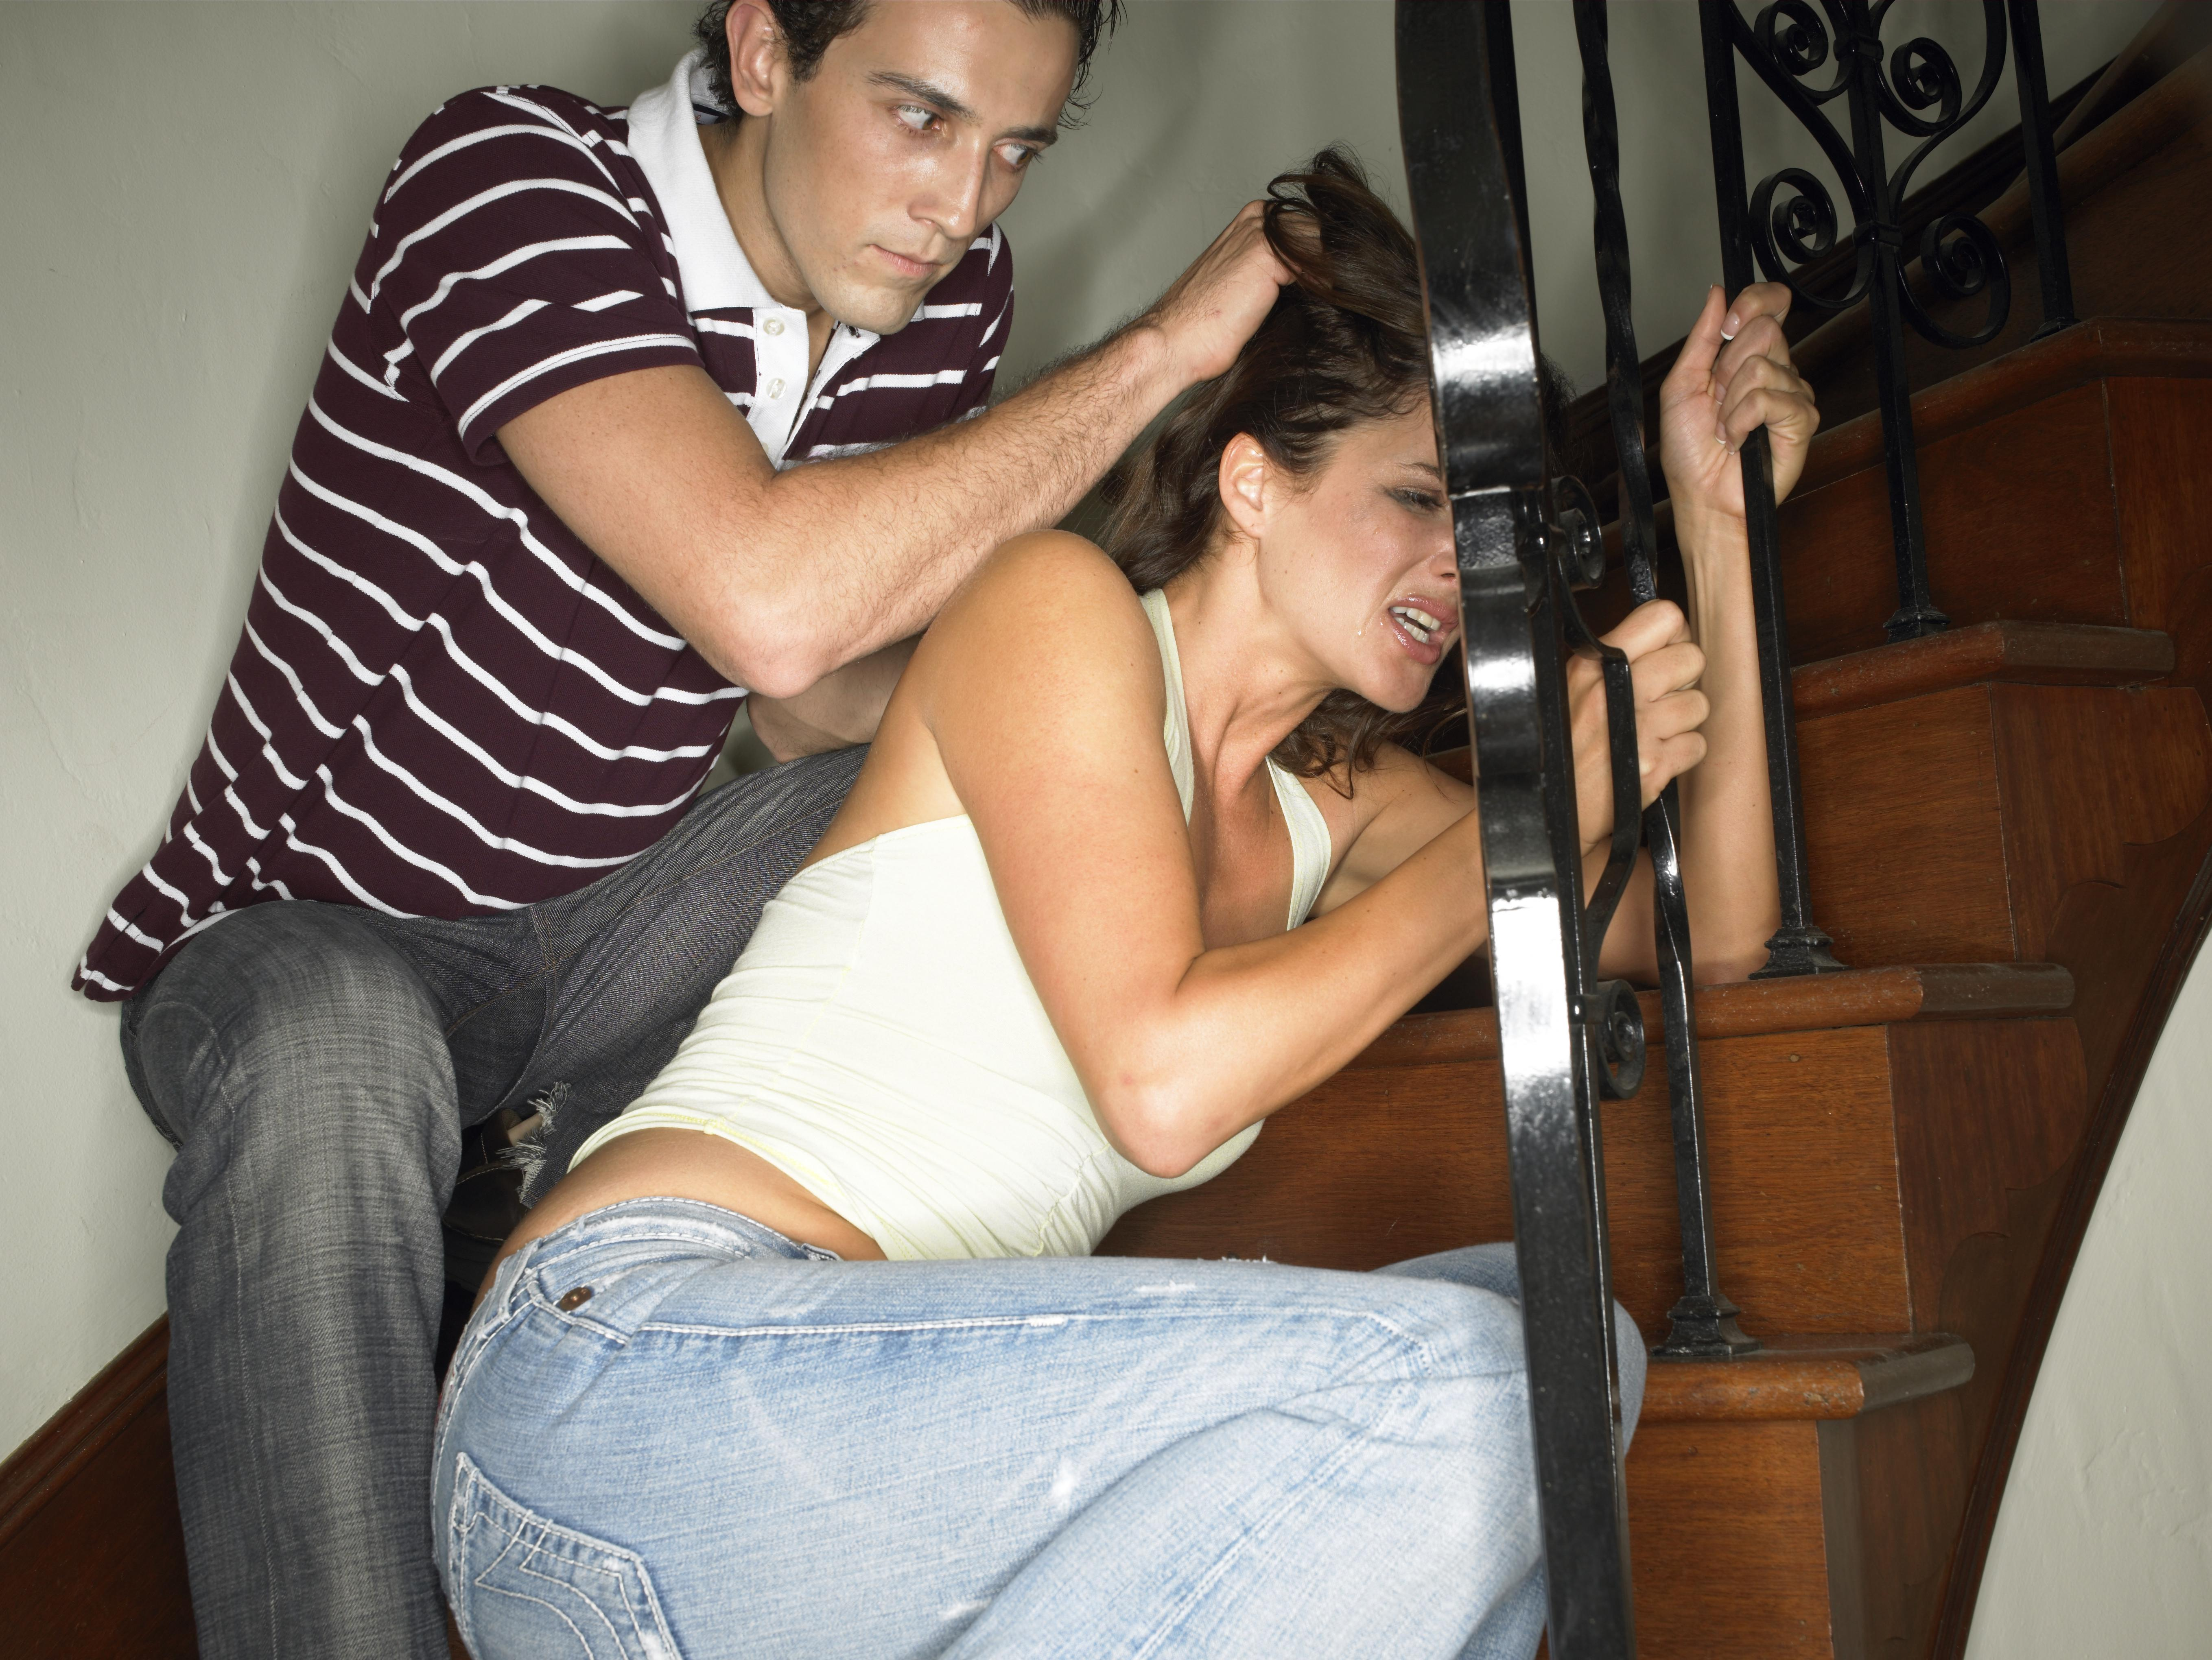 Young man pulling young woman by hair